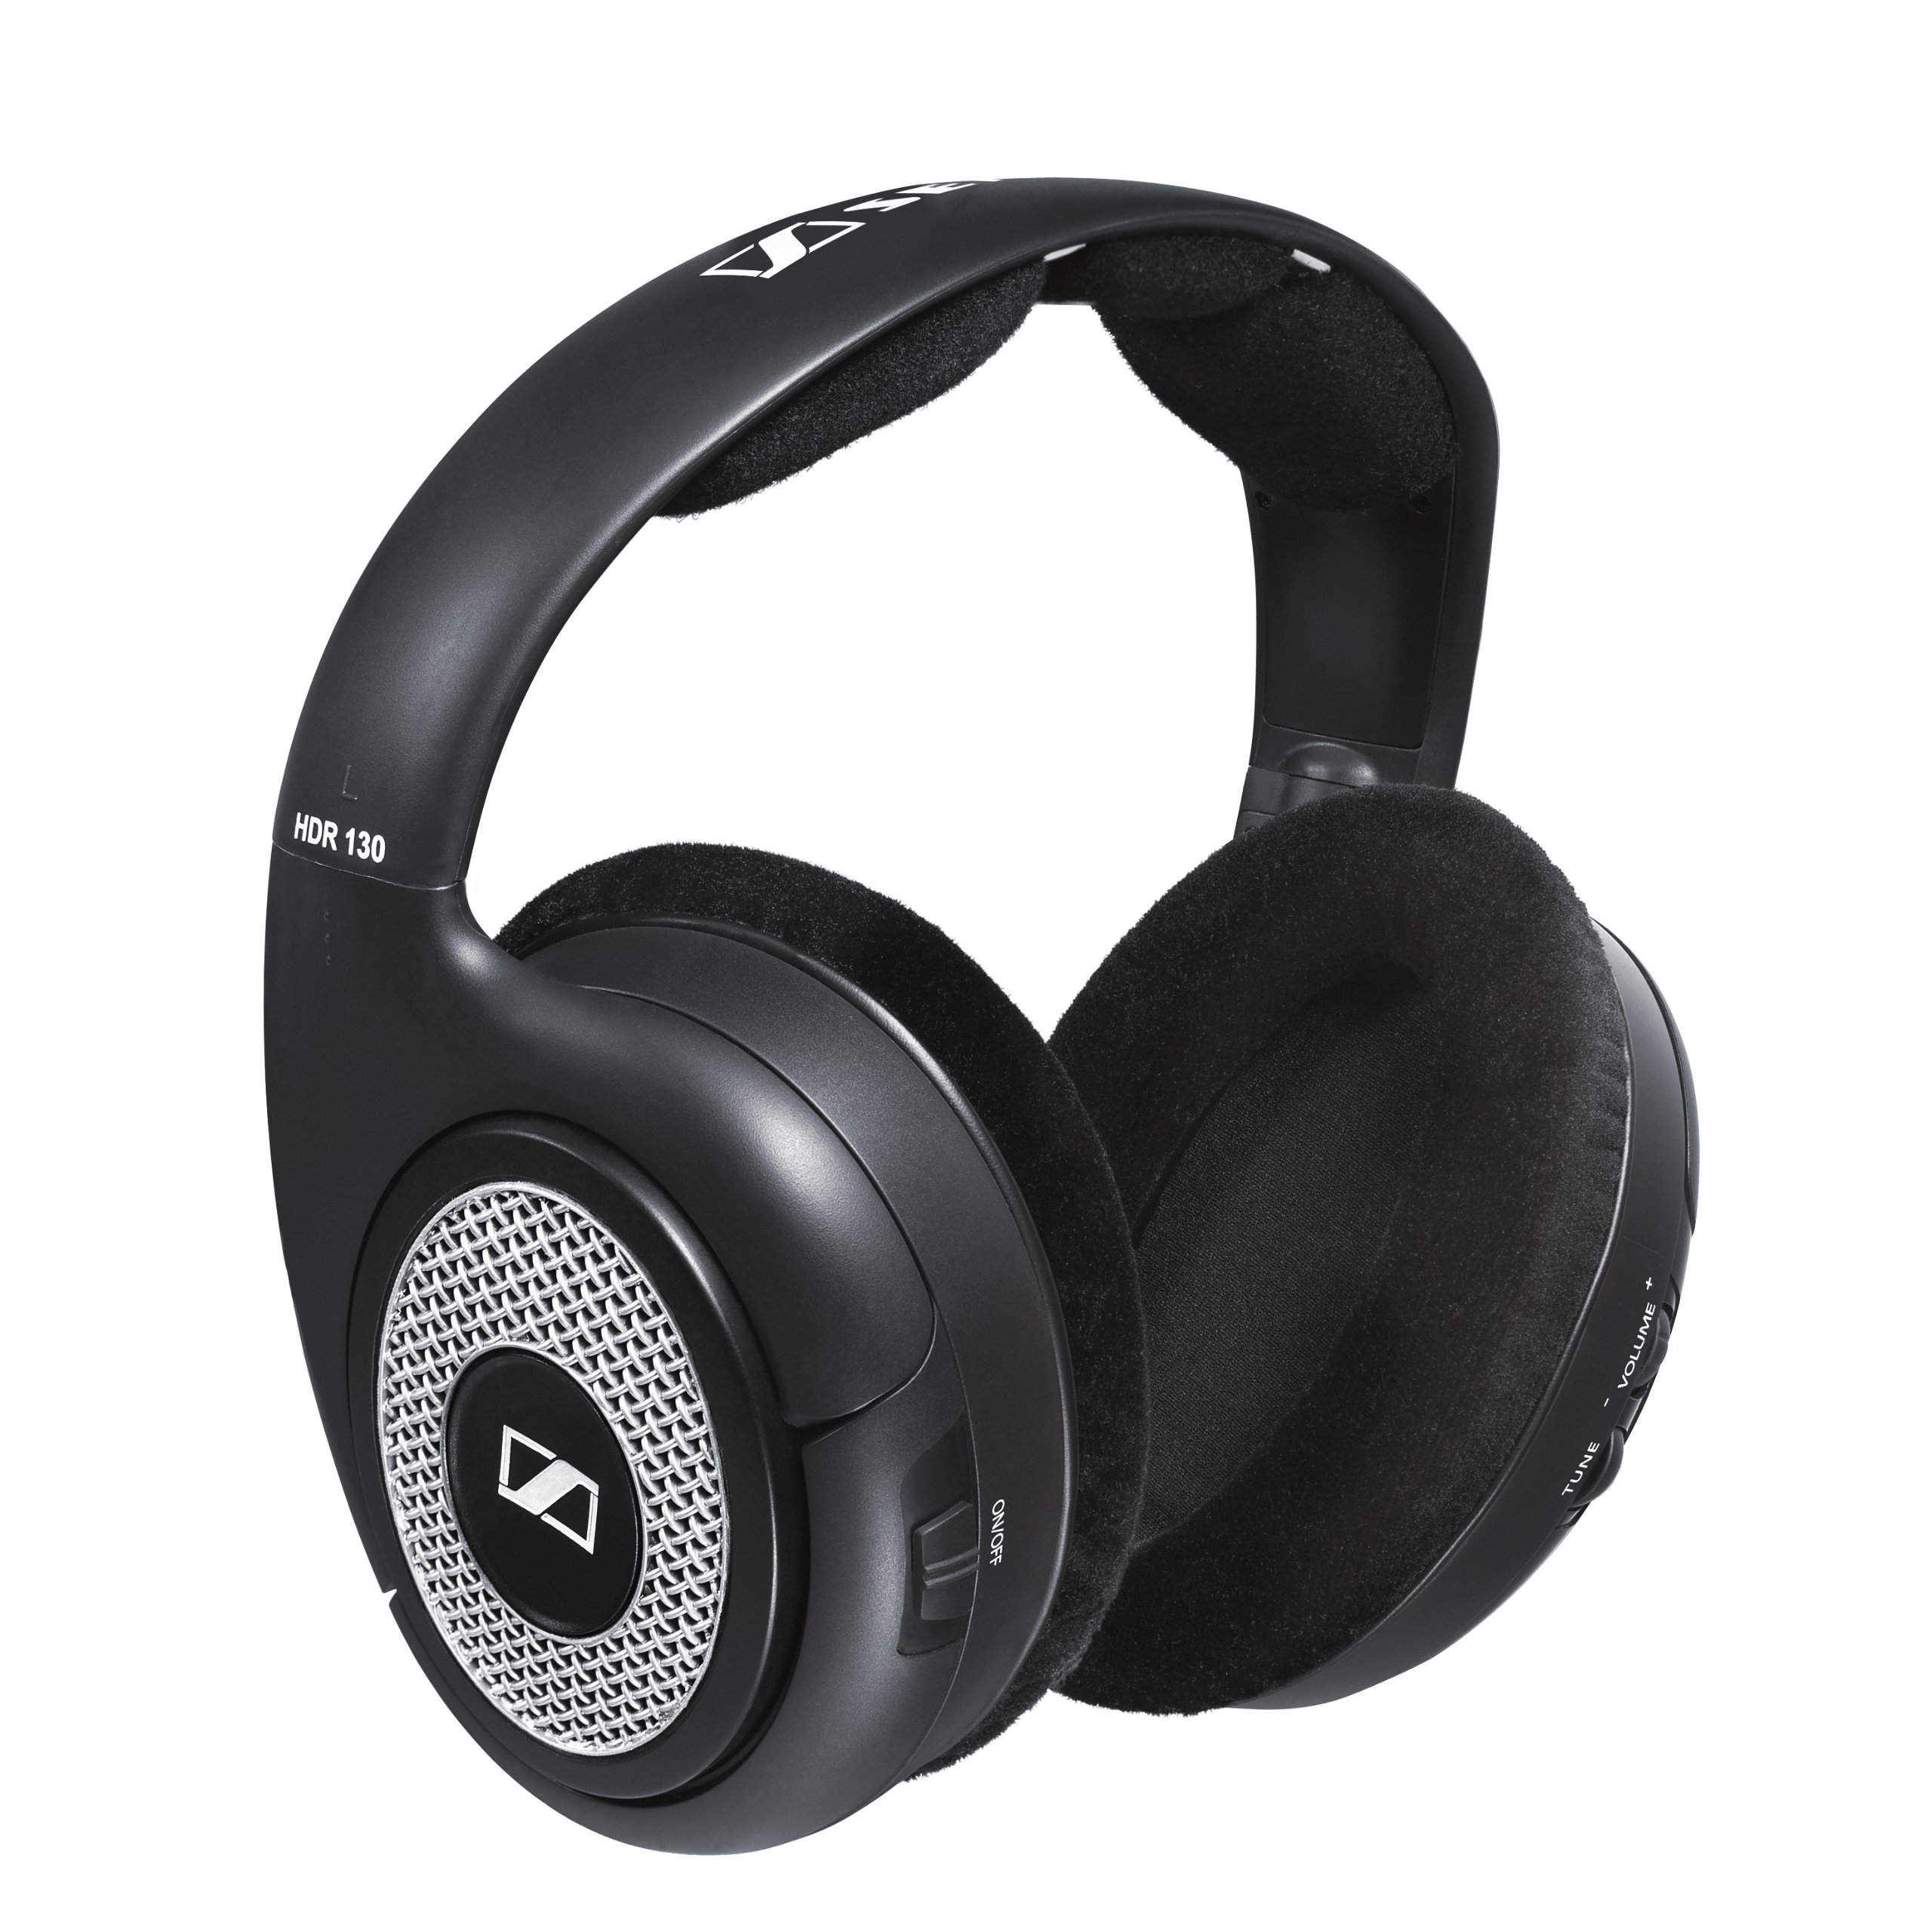 Sennheiser RS 130 Wireless Surround Sound Headphones (Discontinued by Manufacturer)